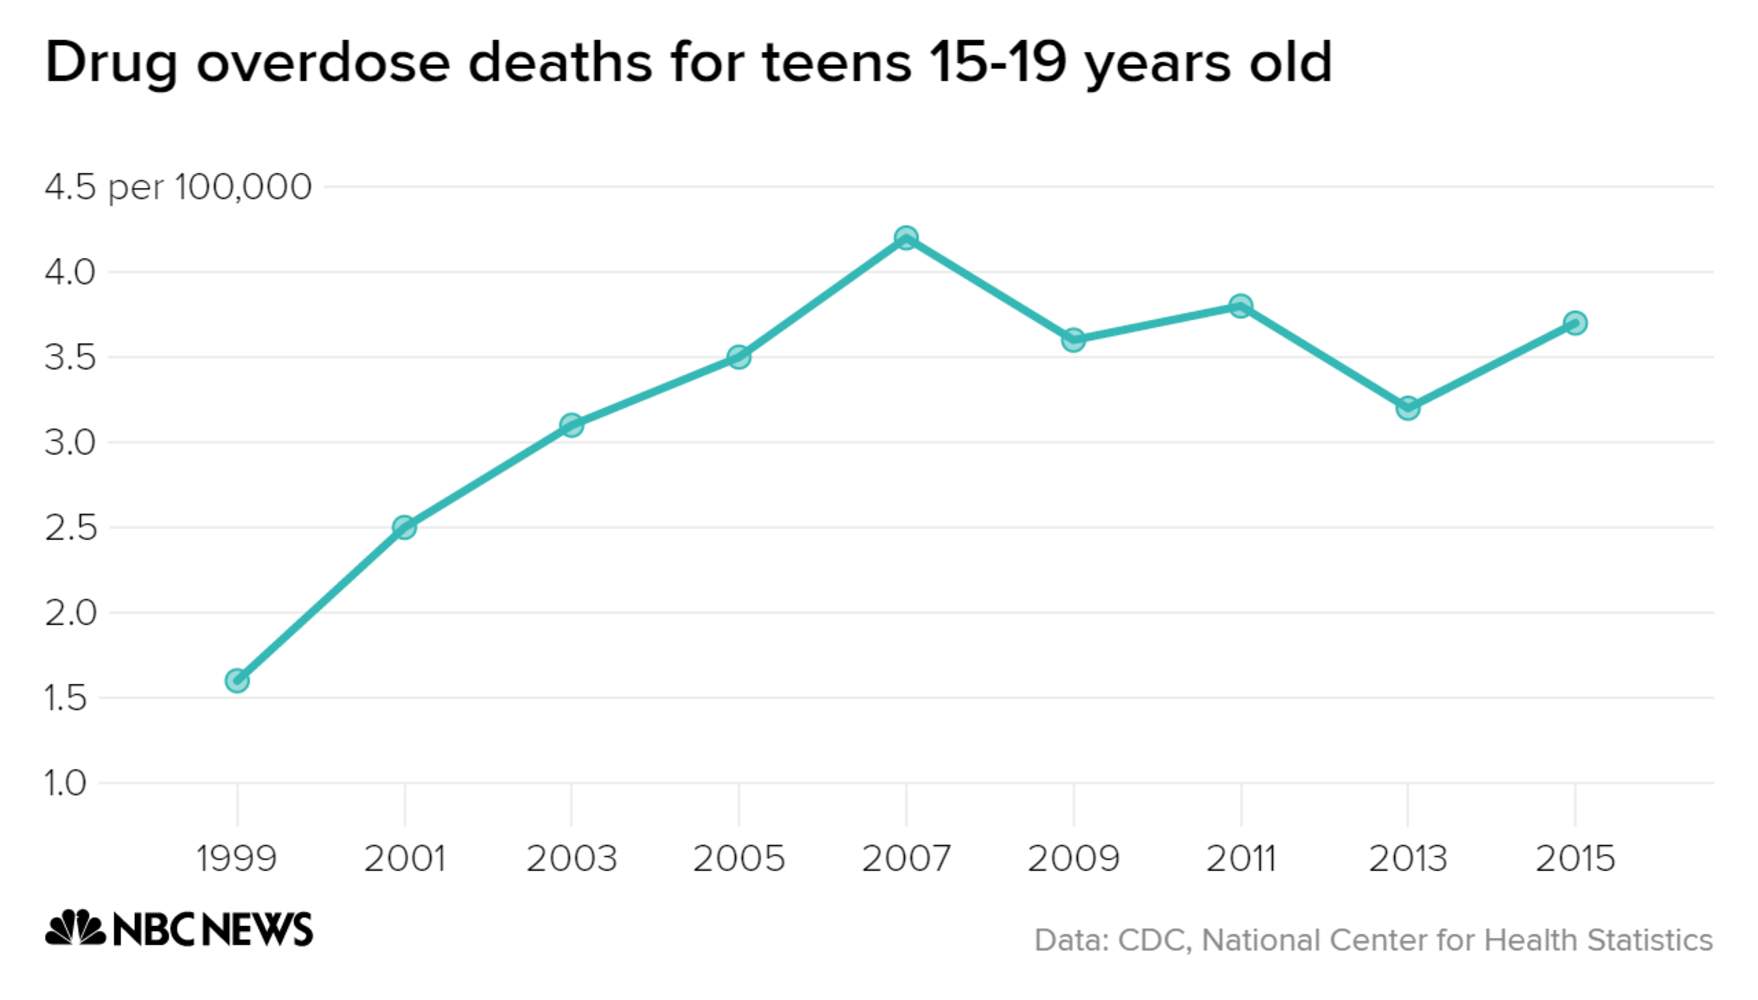 https://media4.s-nbcnews.com/j/newscms/2017_33/2121346/drug_overdose_deaths_for_teens_15-19_years_old_deaths_per_100000_chartbuilder_eba42dfcbd23e52d8c8f197ca259568b.nbcnews-ux-2880-1000.png